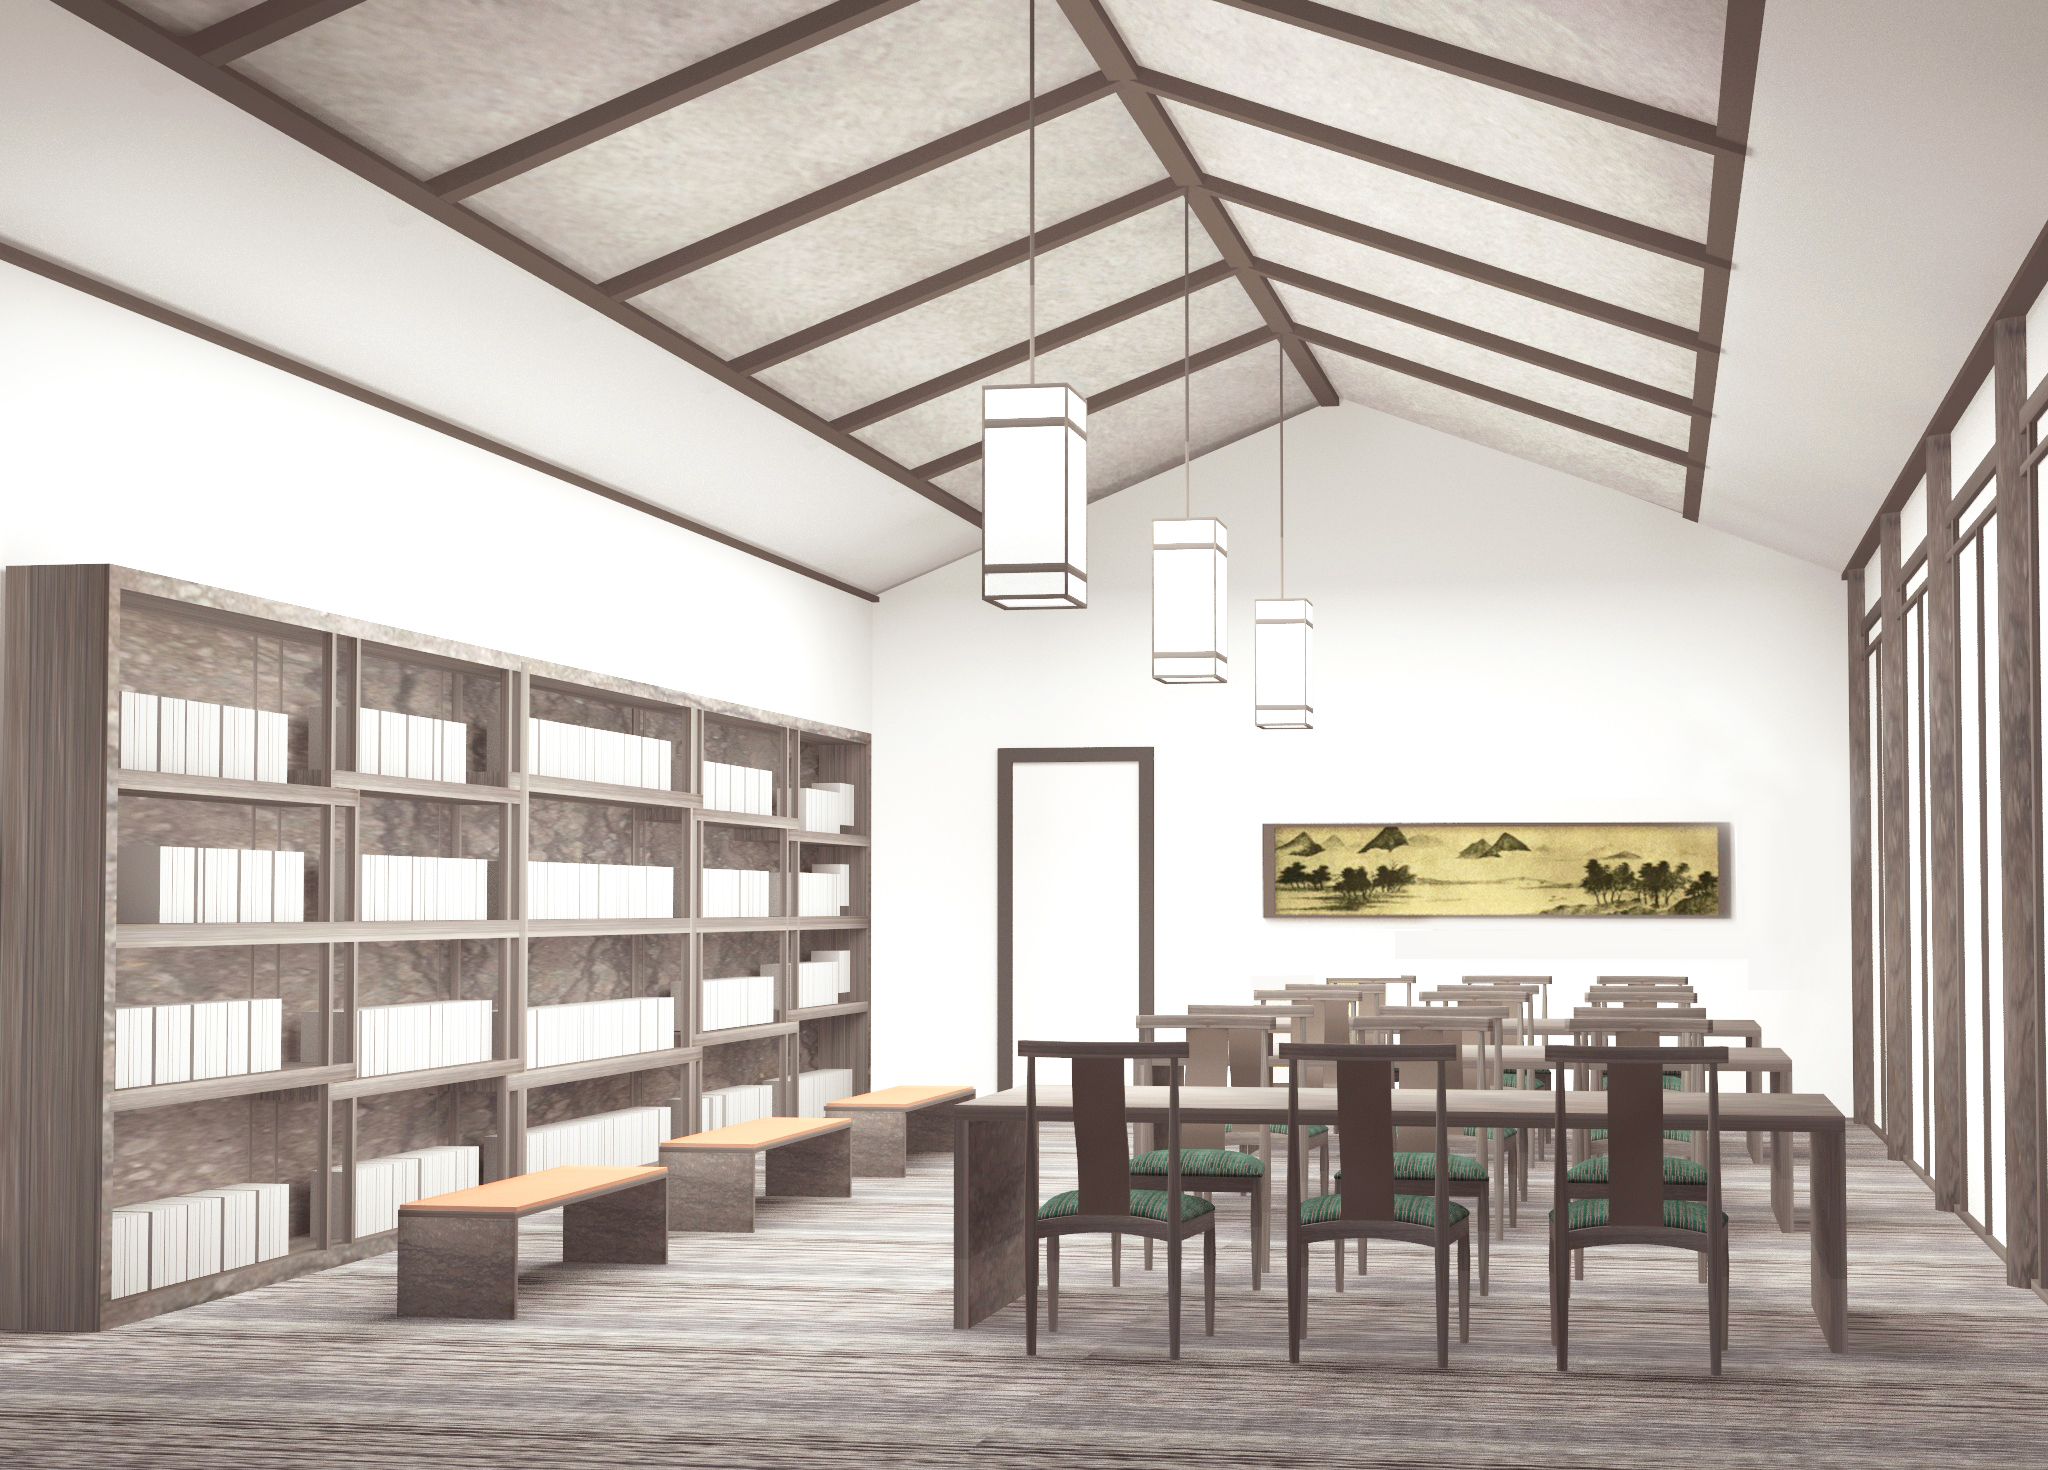 yixin-feng-beijing-public-library-of-the-culture-of-traditional-china-bfa_19065491975_o.jpg